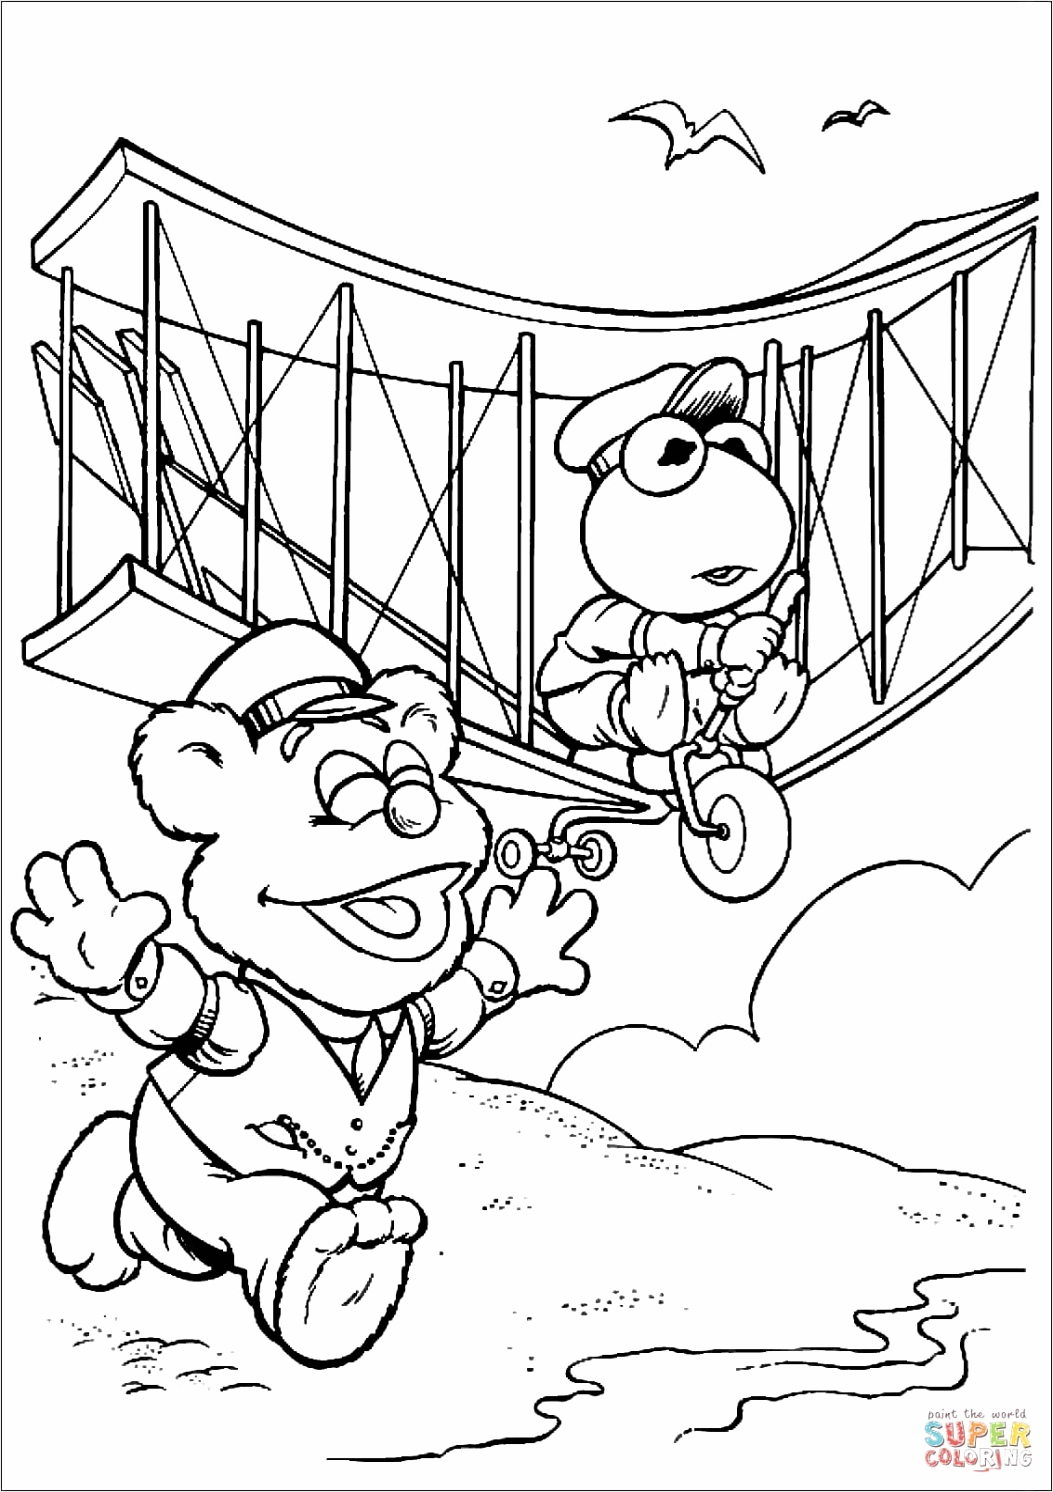 that baby is running coloring page wrtue